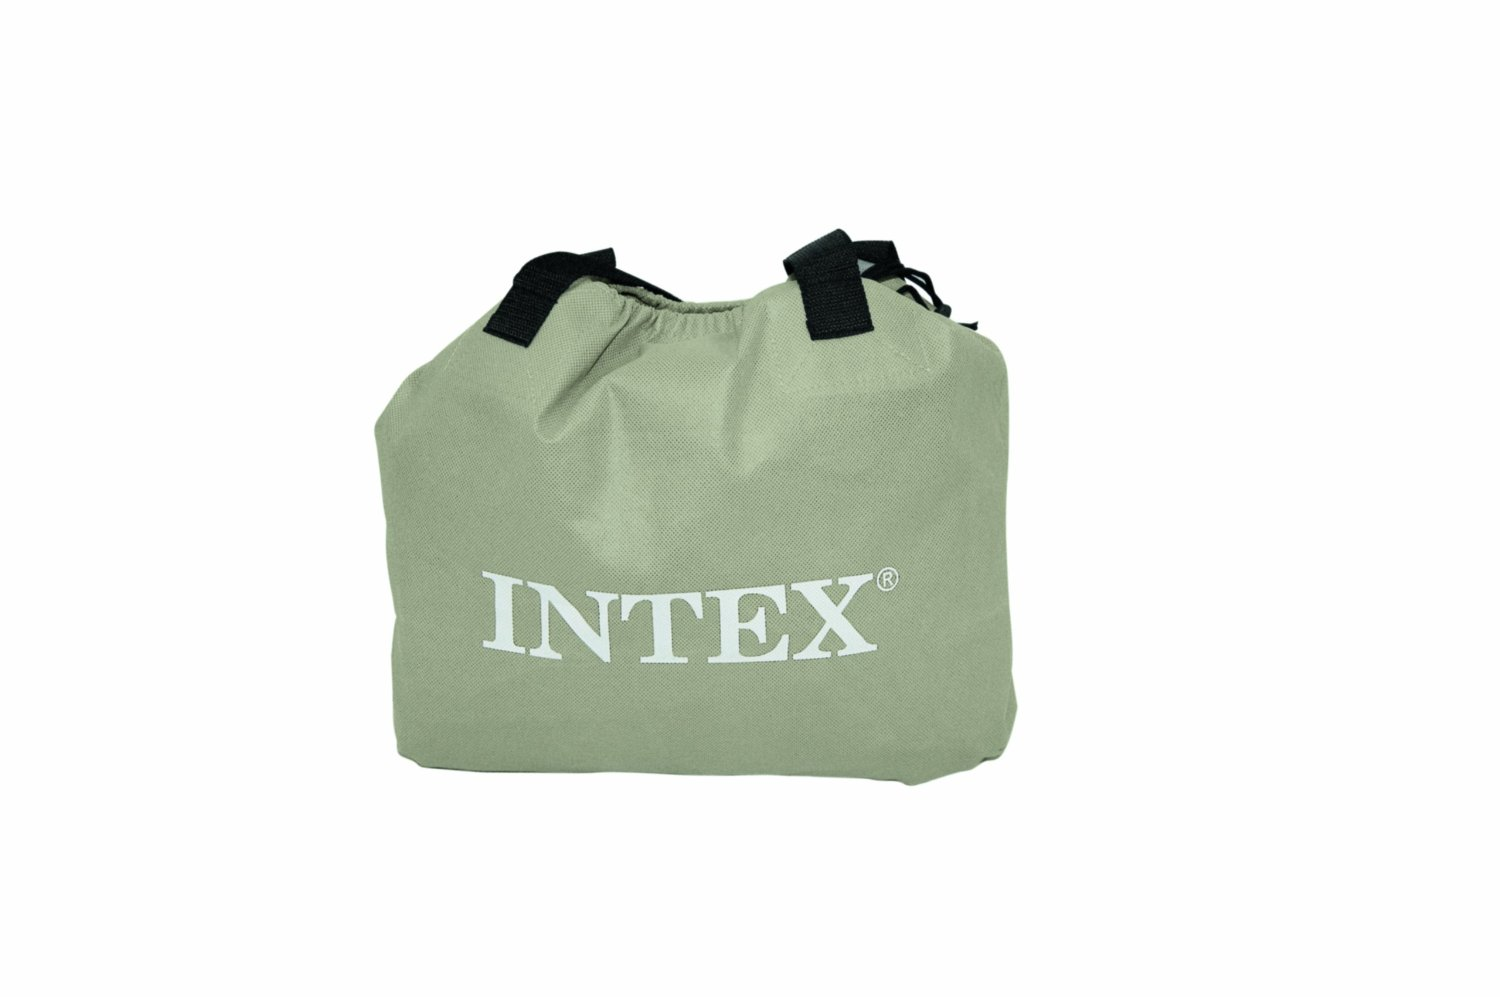 air mattress storage bag Intex Deluxe Twin Pillow Rest Raised Soft Flocked Air Mattress +  air mattress storage bag